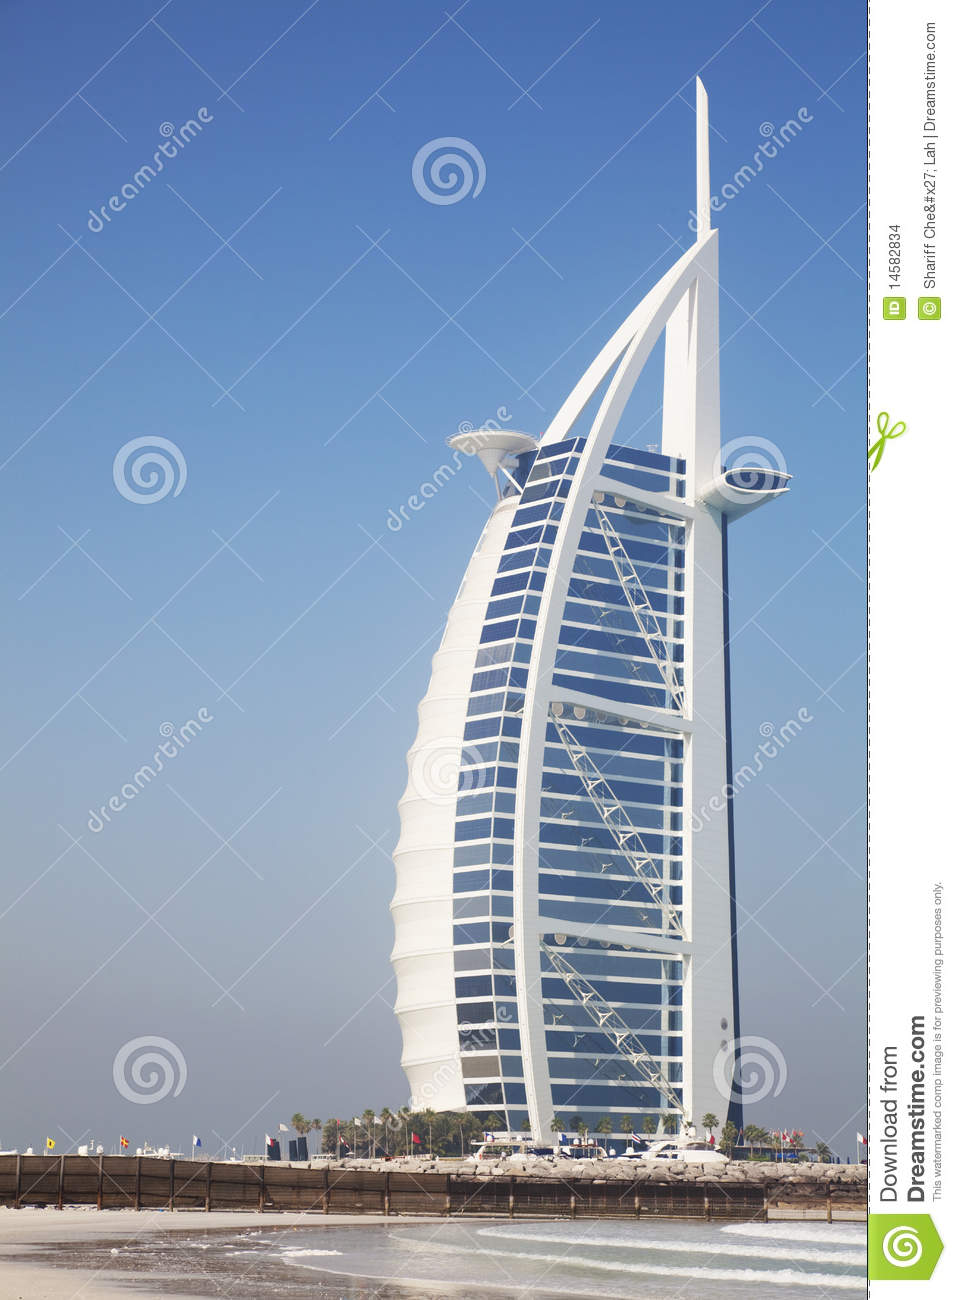 Burj Al Arab, Dubai, UAE Stock Images.